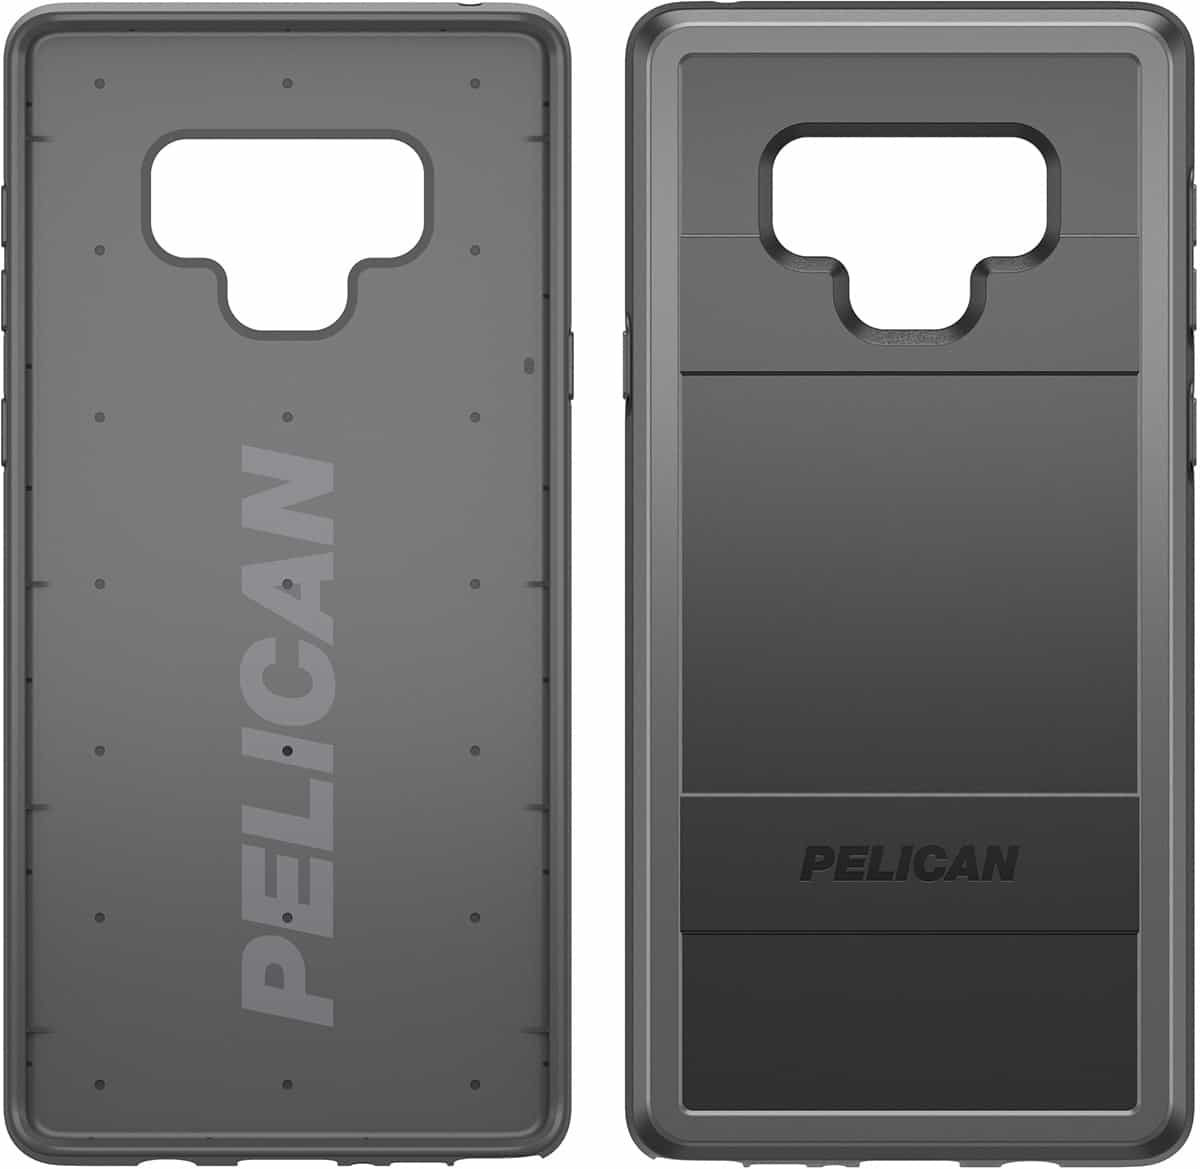 Pelican Protector Galaxy Note 9 case 1